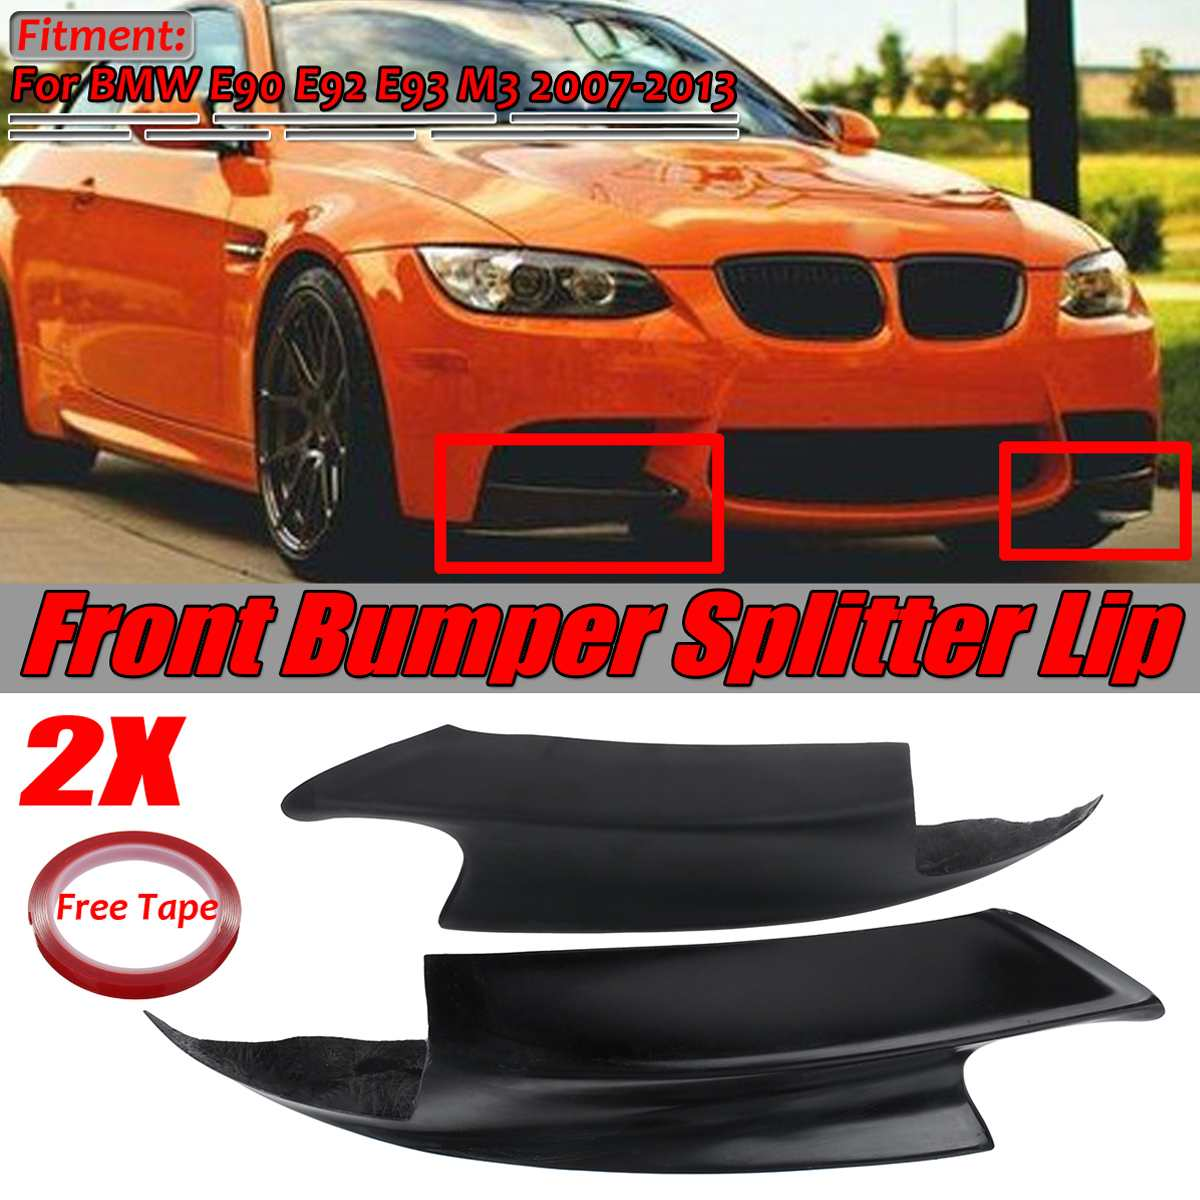 1 Pair E90 <font><b>E92</b></font> <font><b>Bumper</b></font> Lip <font><b>E92</b></font> E93 Car Front <font><b>Bumper</b></font> Lip Splitter Spoiler Diffuser Gurad Cover For BMW E90 <font><b>E92</b></font> E93 M3 2007-2013 image